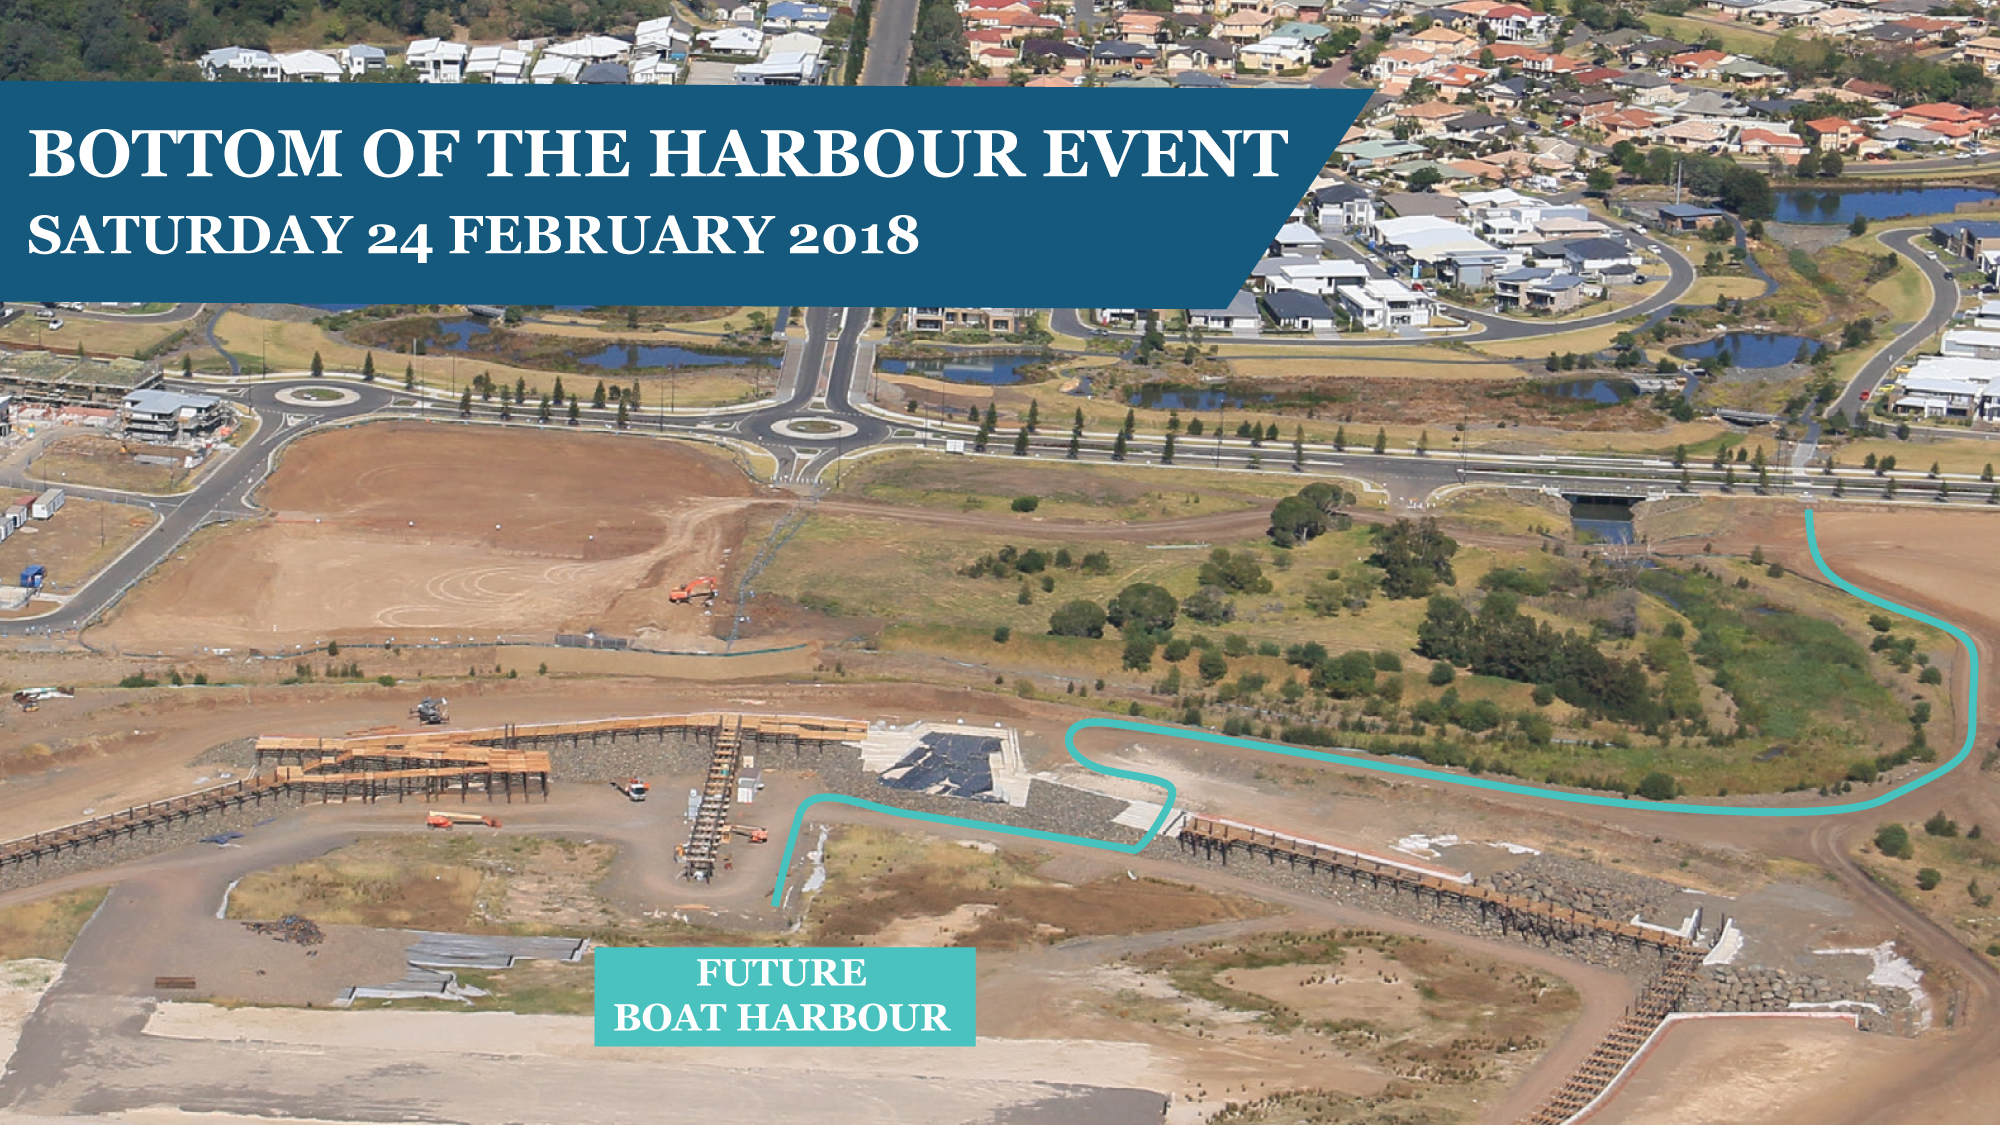 Bottom of the harbour event